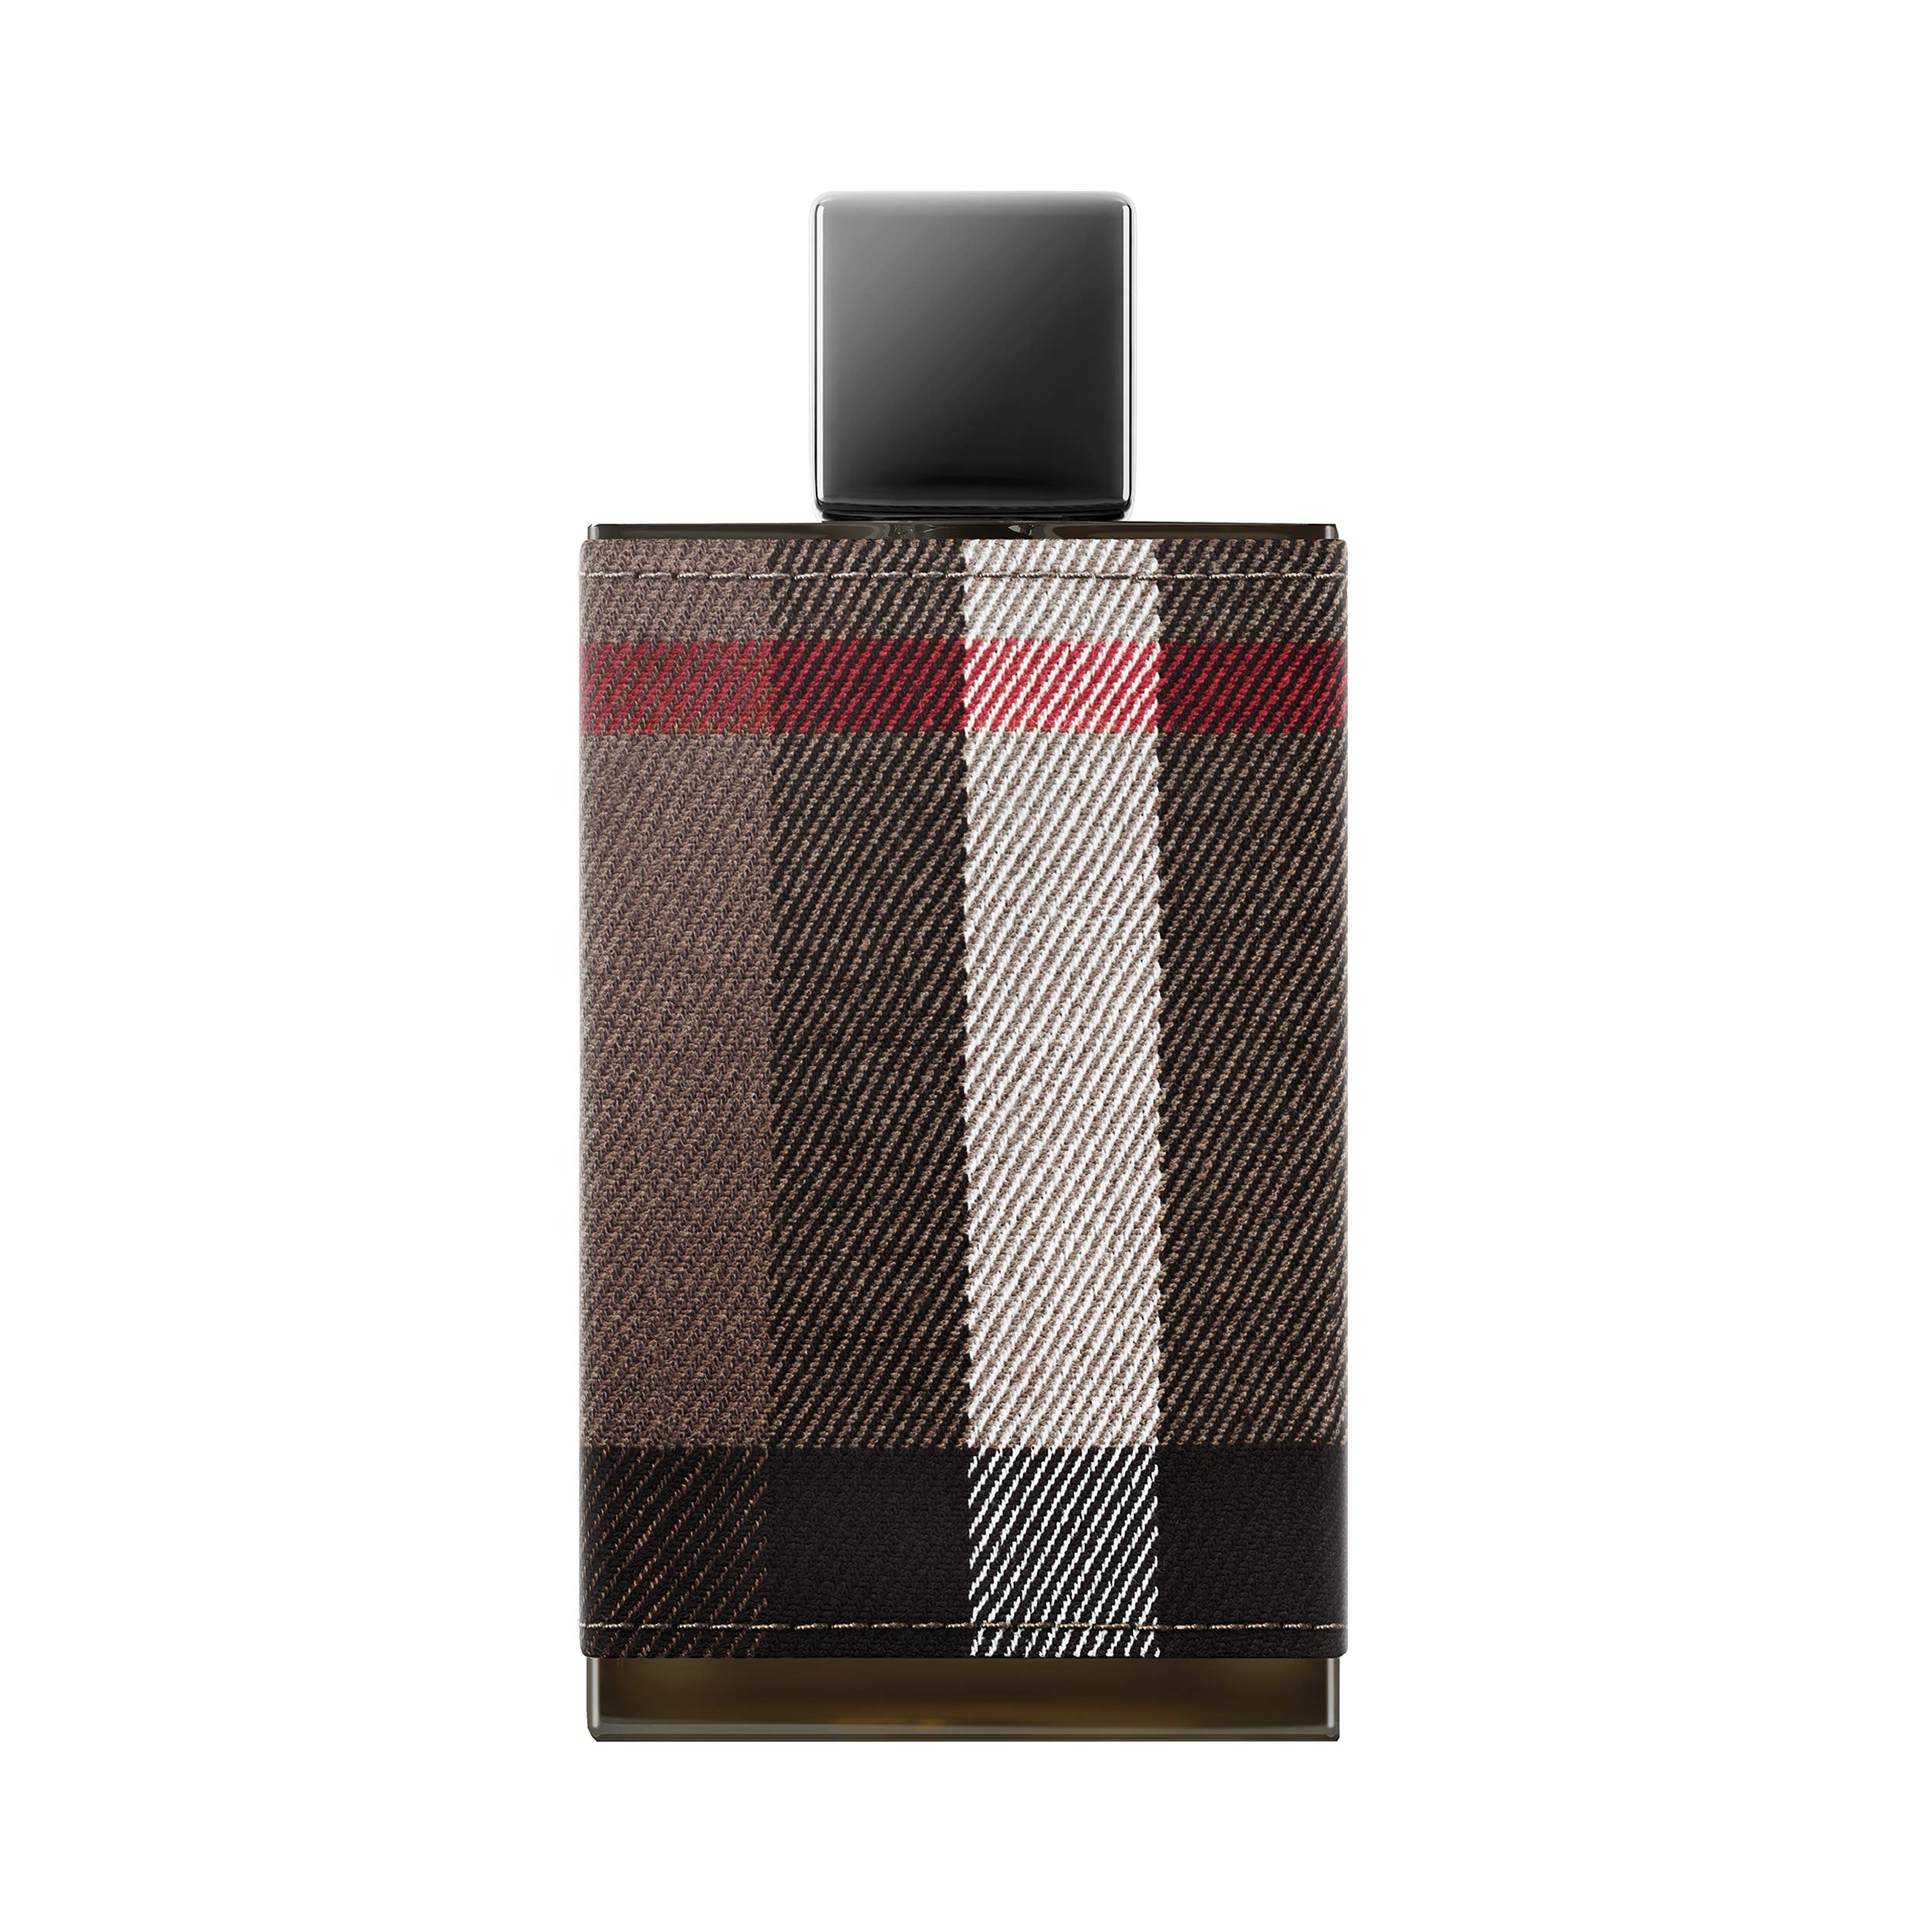 6057d9681279 Amazon.com  BURBERRY London Eau De Toilette for Men  Burberry  Luxury Beauty